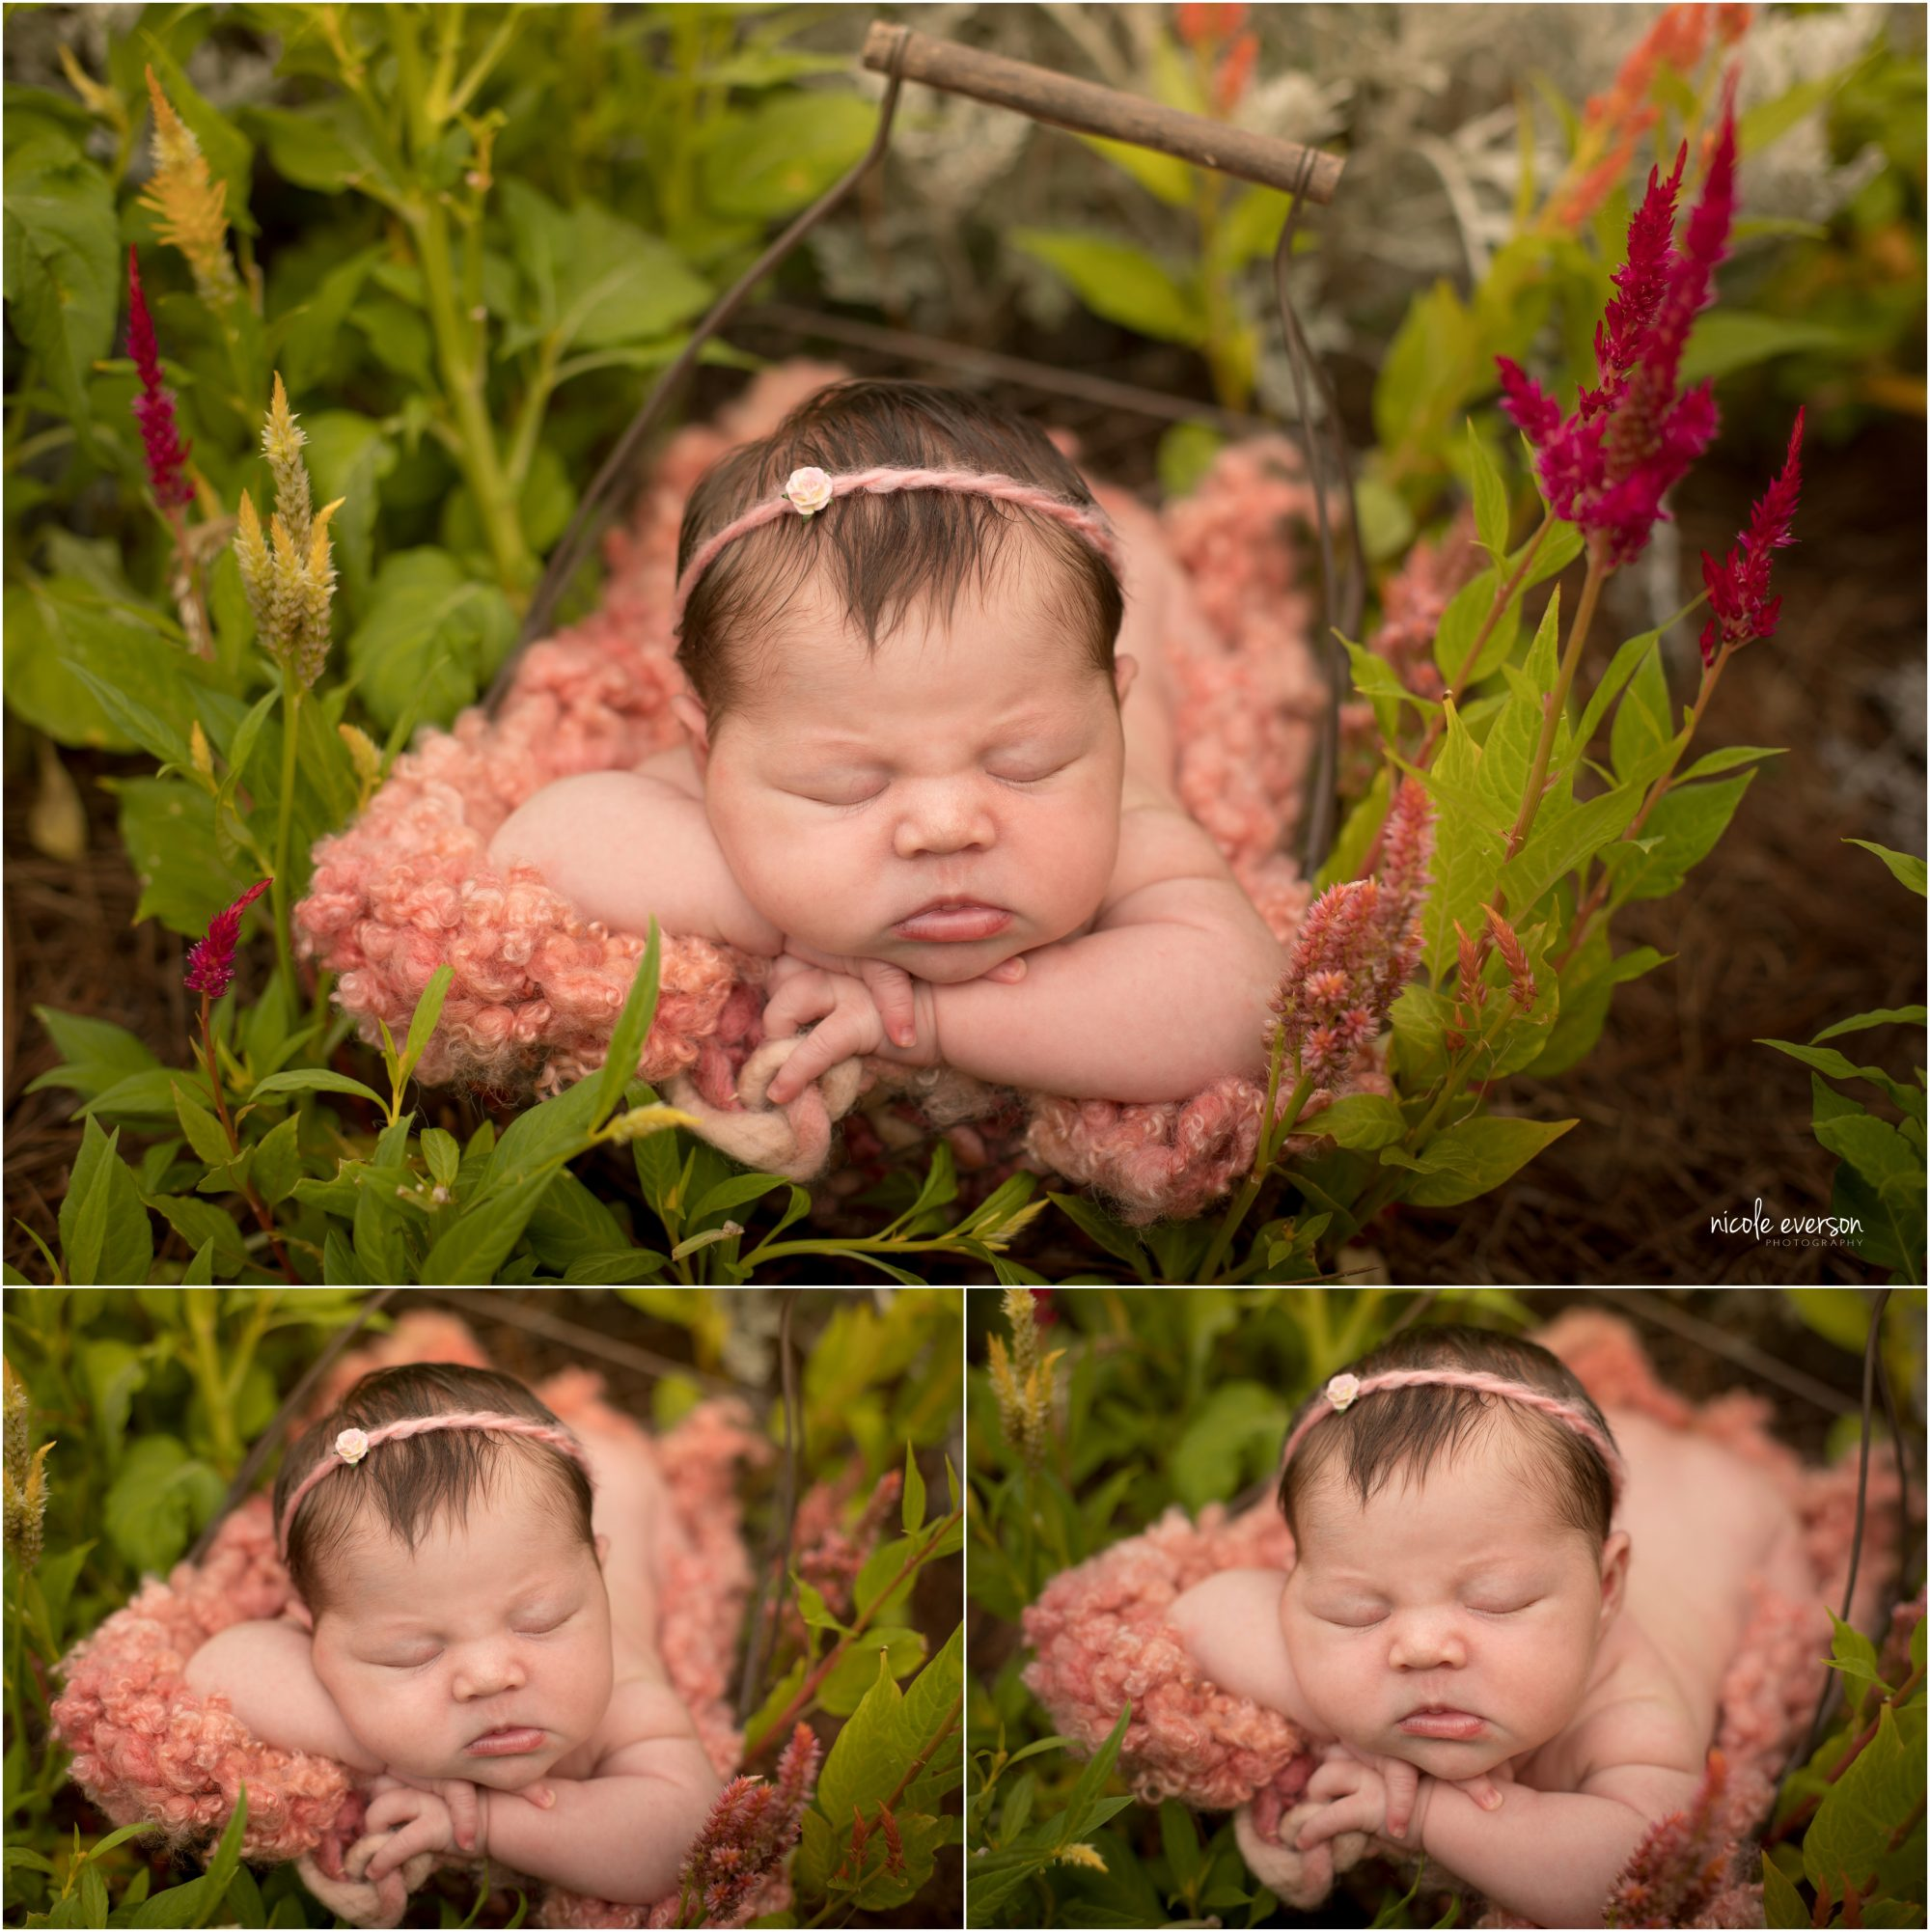 newborn photographed in a flower patch in Tallahassee FL